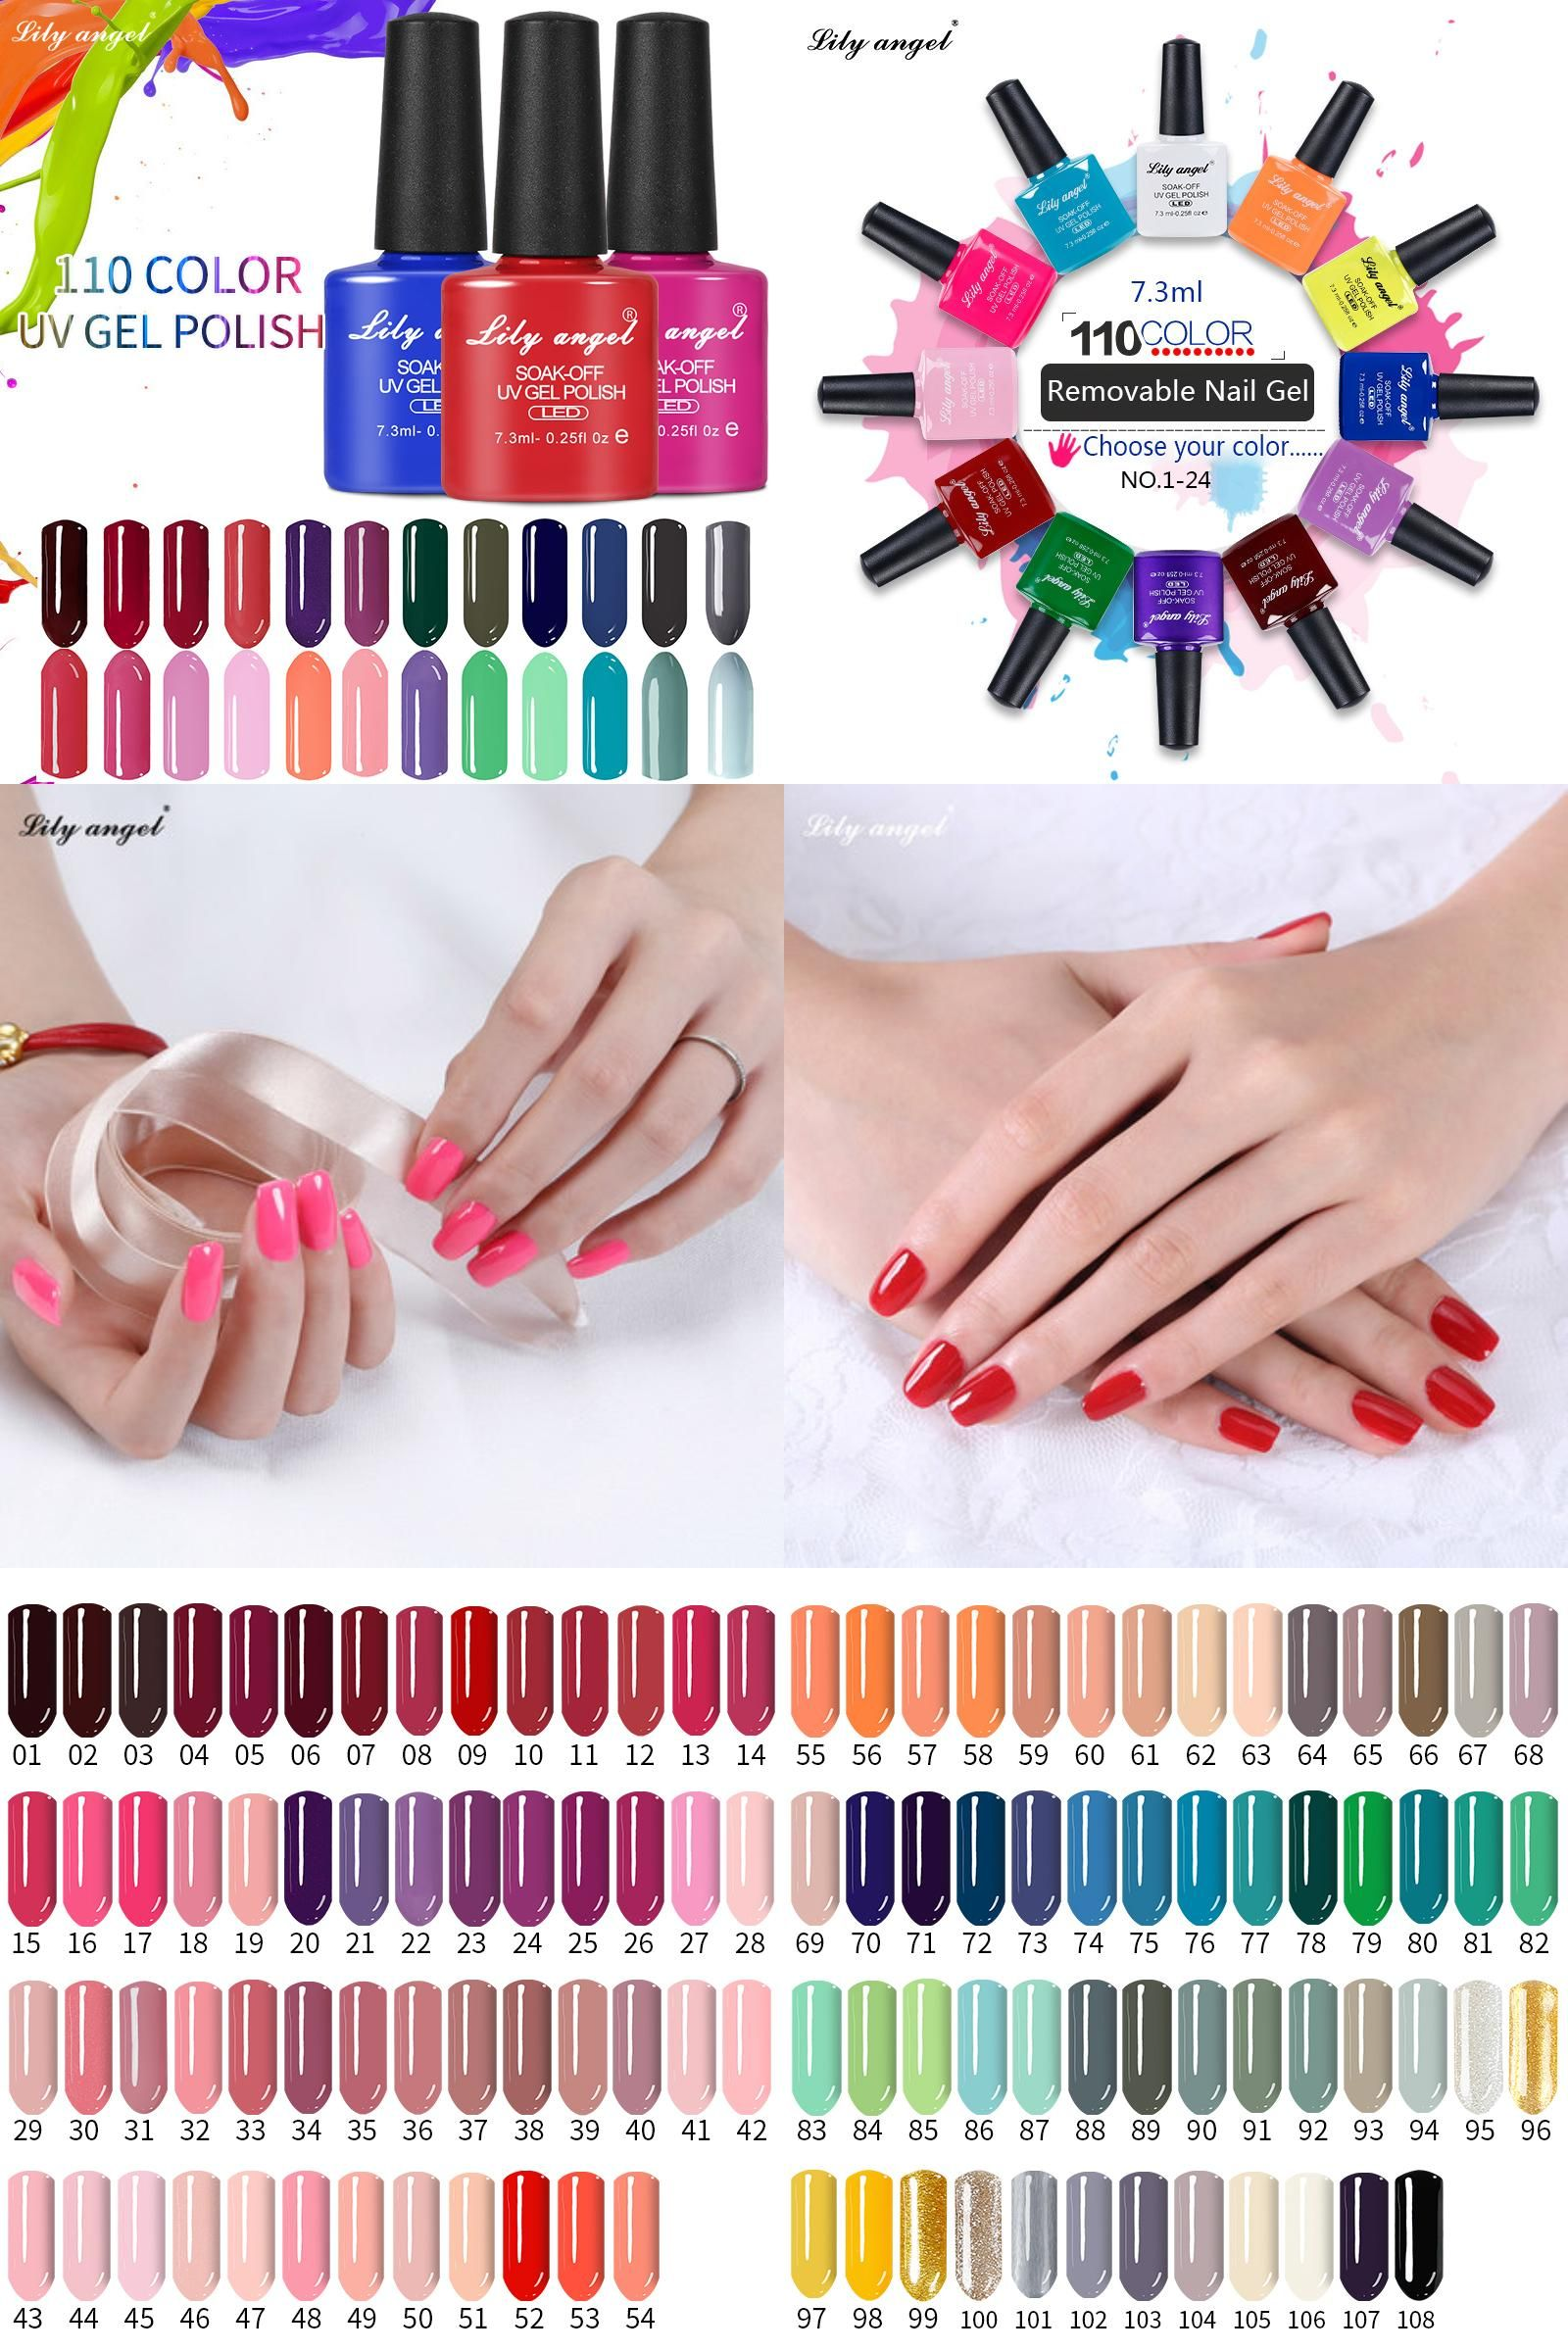 Mermaid Handle Soft Nail Dust Cleaner Cleaning Brush Uv Led Gel Powder Remover Nail Brushes New Well Elegant And Sturdy Package Nail Brushes